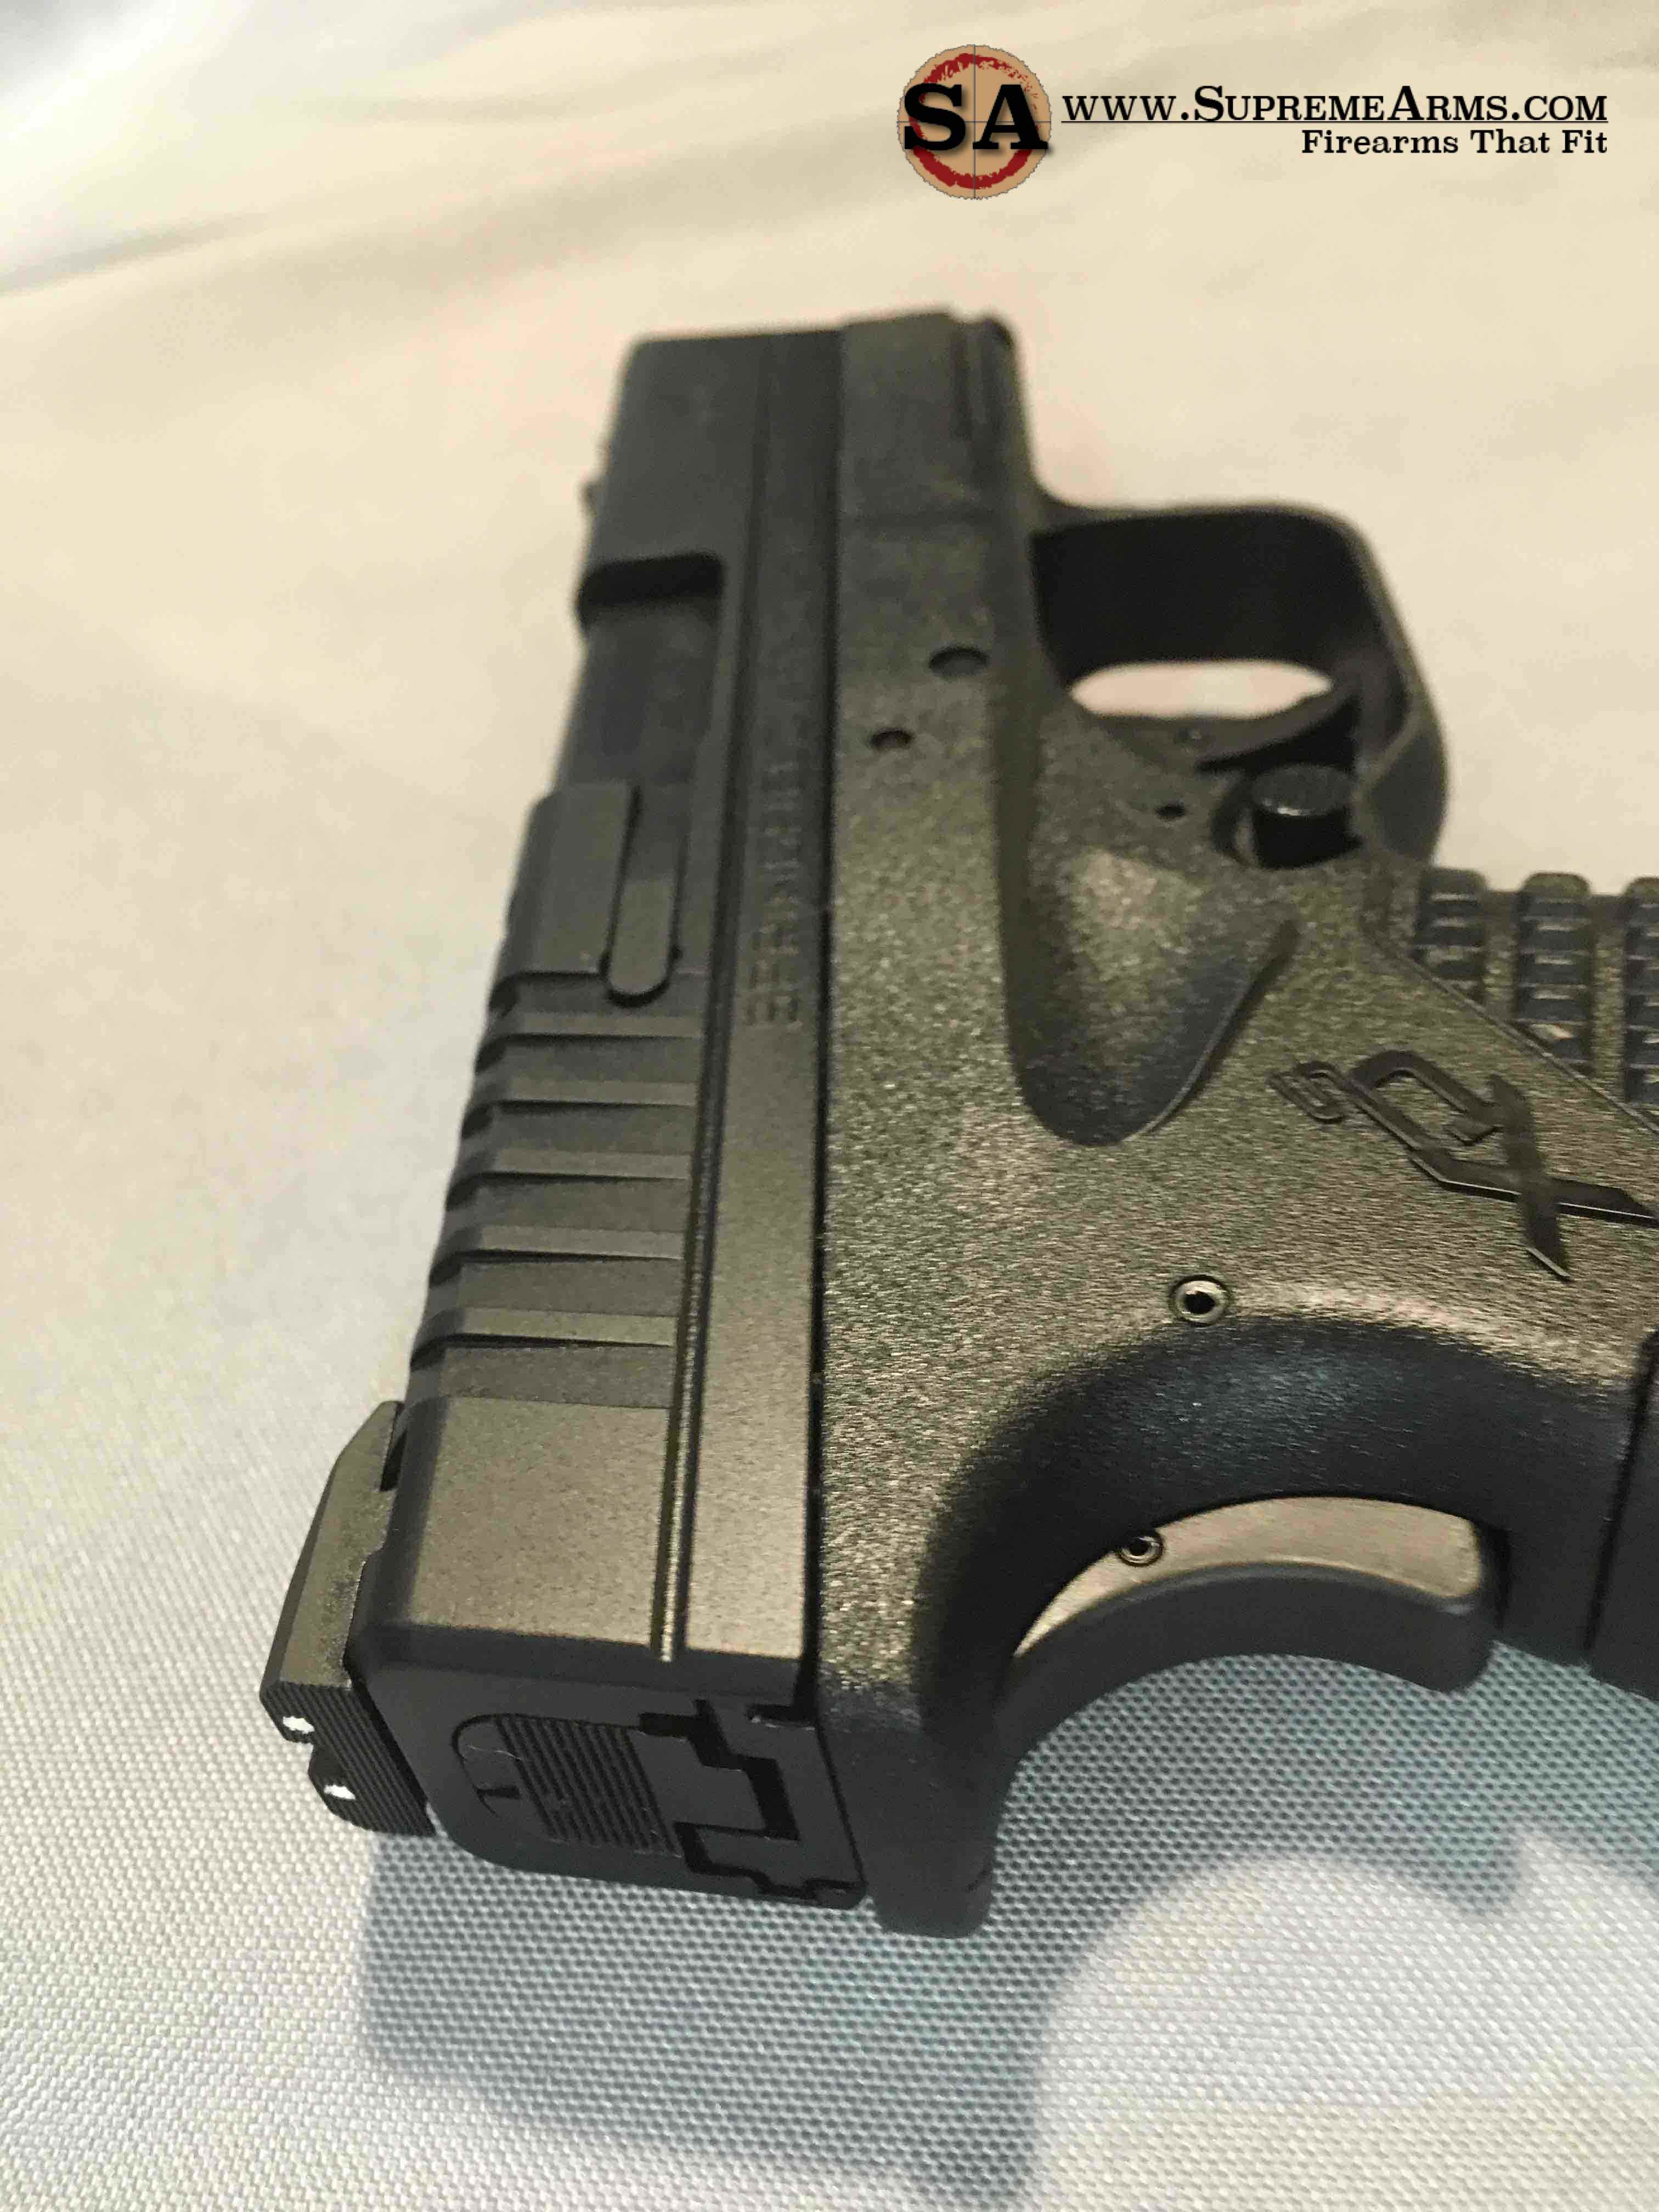 xds45 top with fiber optic sight